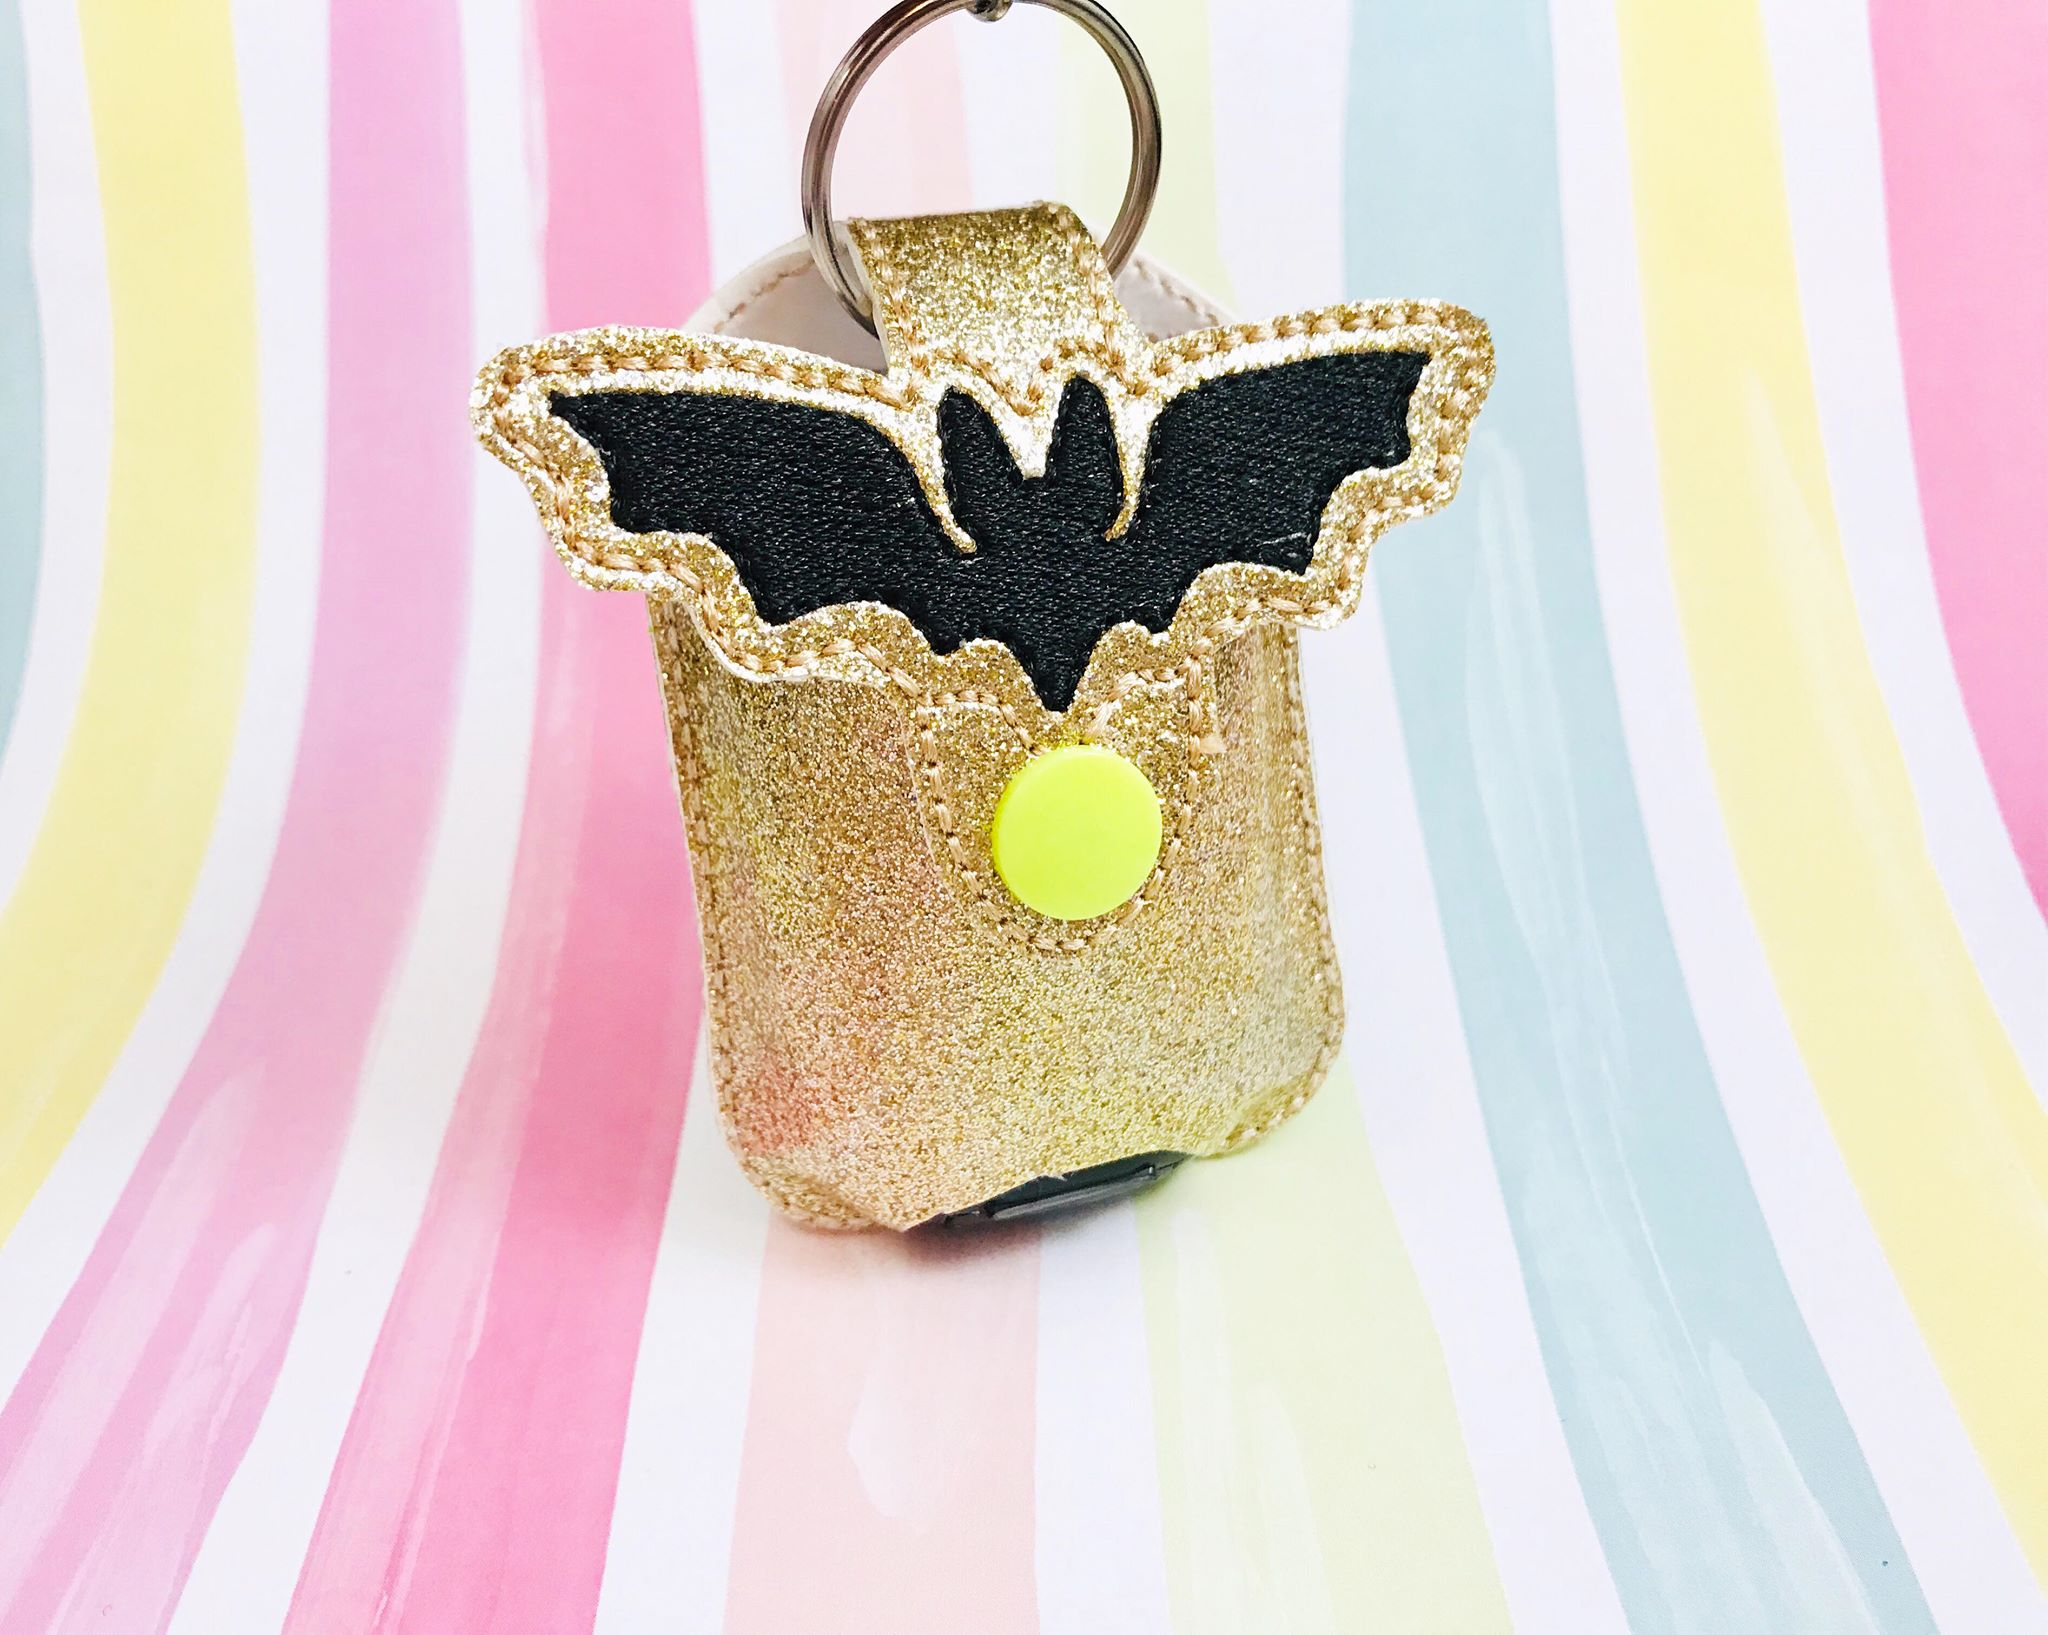 Bat Applique Sanitizer Holder- Read Description